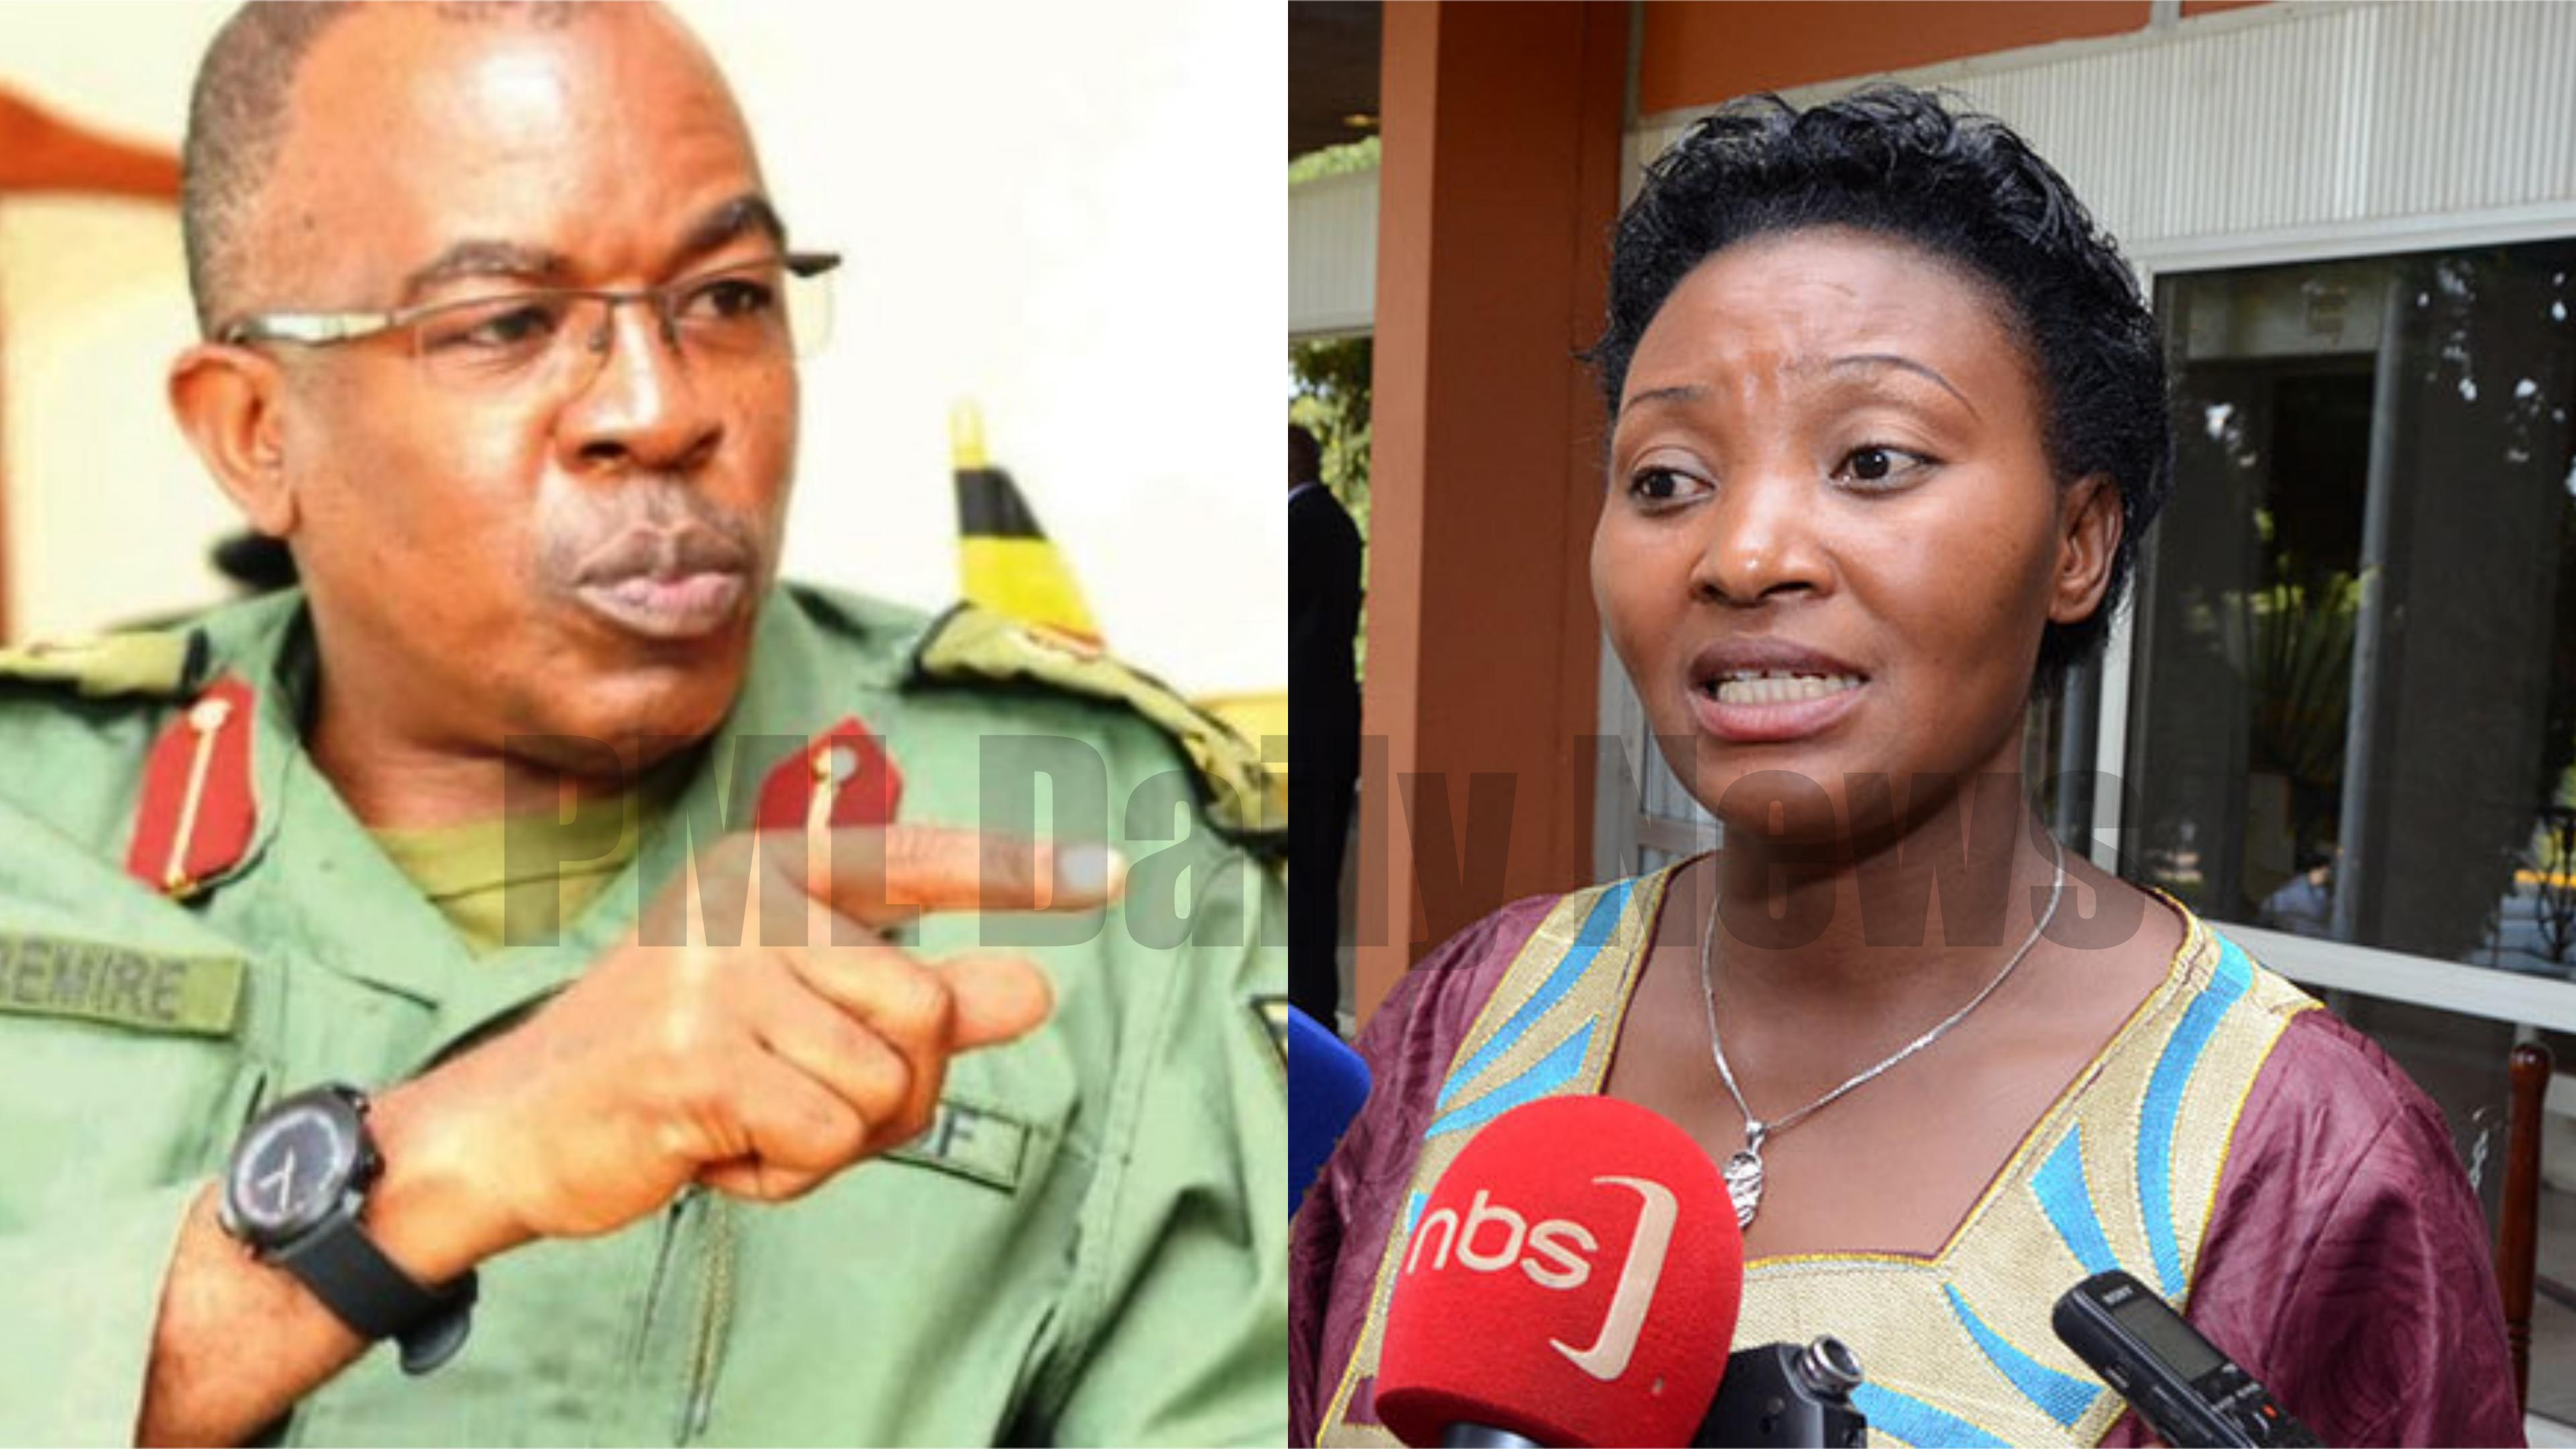 UPDF Spokesperson Brig. Richard Karemire has refuted claims by Former Leader of Opposition, Winnie Kiiza that the army has deployed at her residence in Kiburara, Kasese (FILE PHOTO)